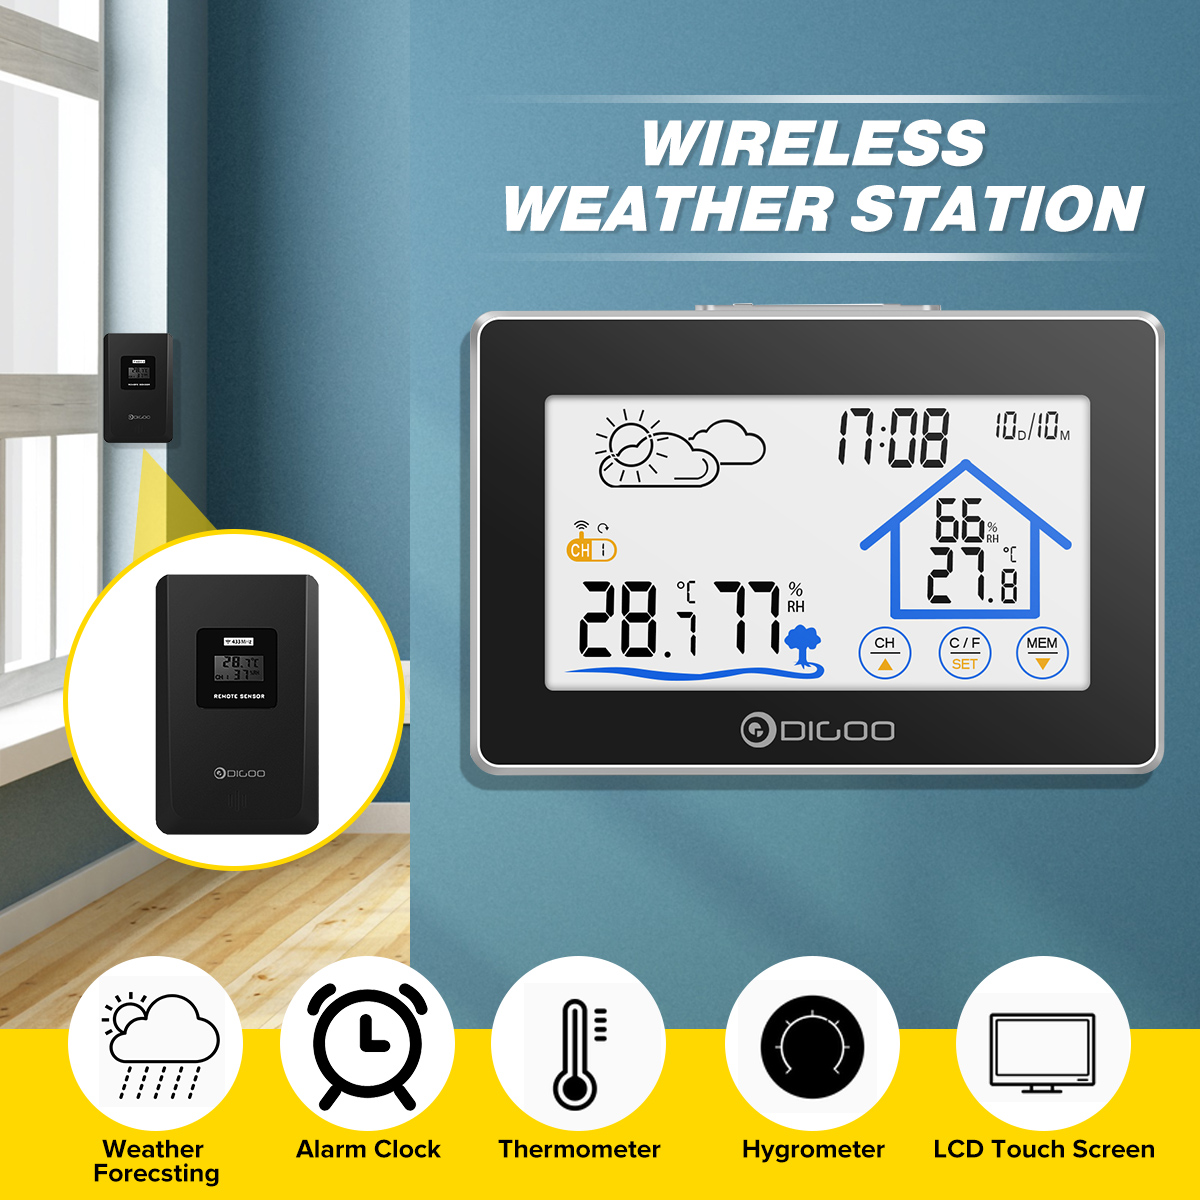 Digoo DG-TH8380 Touch Weather Station + Outdoor Forecast Sensor 3CH Backlit Thermometer Hygrometer Calendar Alarm Clock Digoo DG-TH8380 Touch Weather Station + Outdoor Forecast Sensor 3CH Backlit Thermometer Hygrometer Calendar Alarm Clock